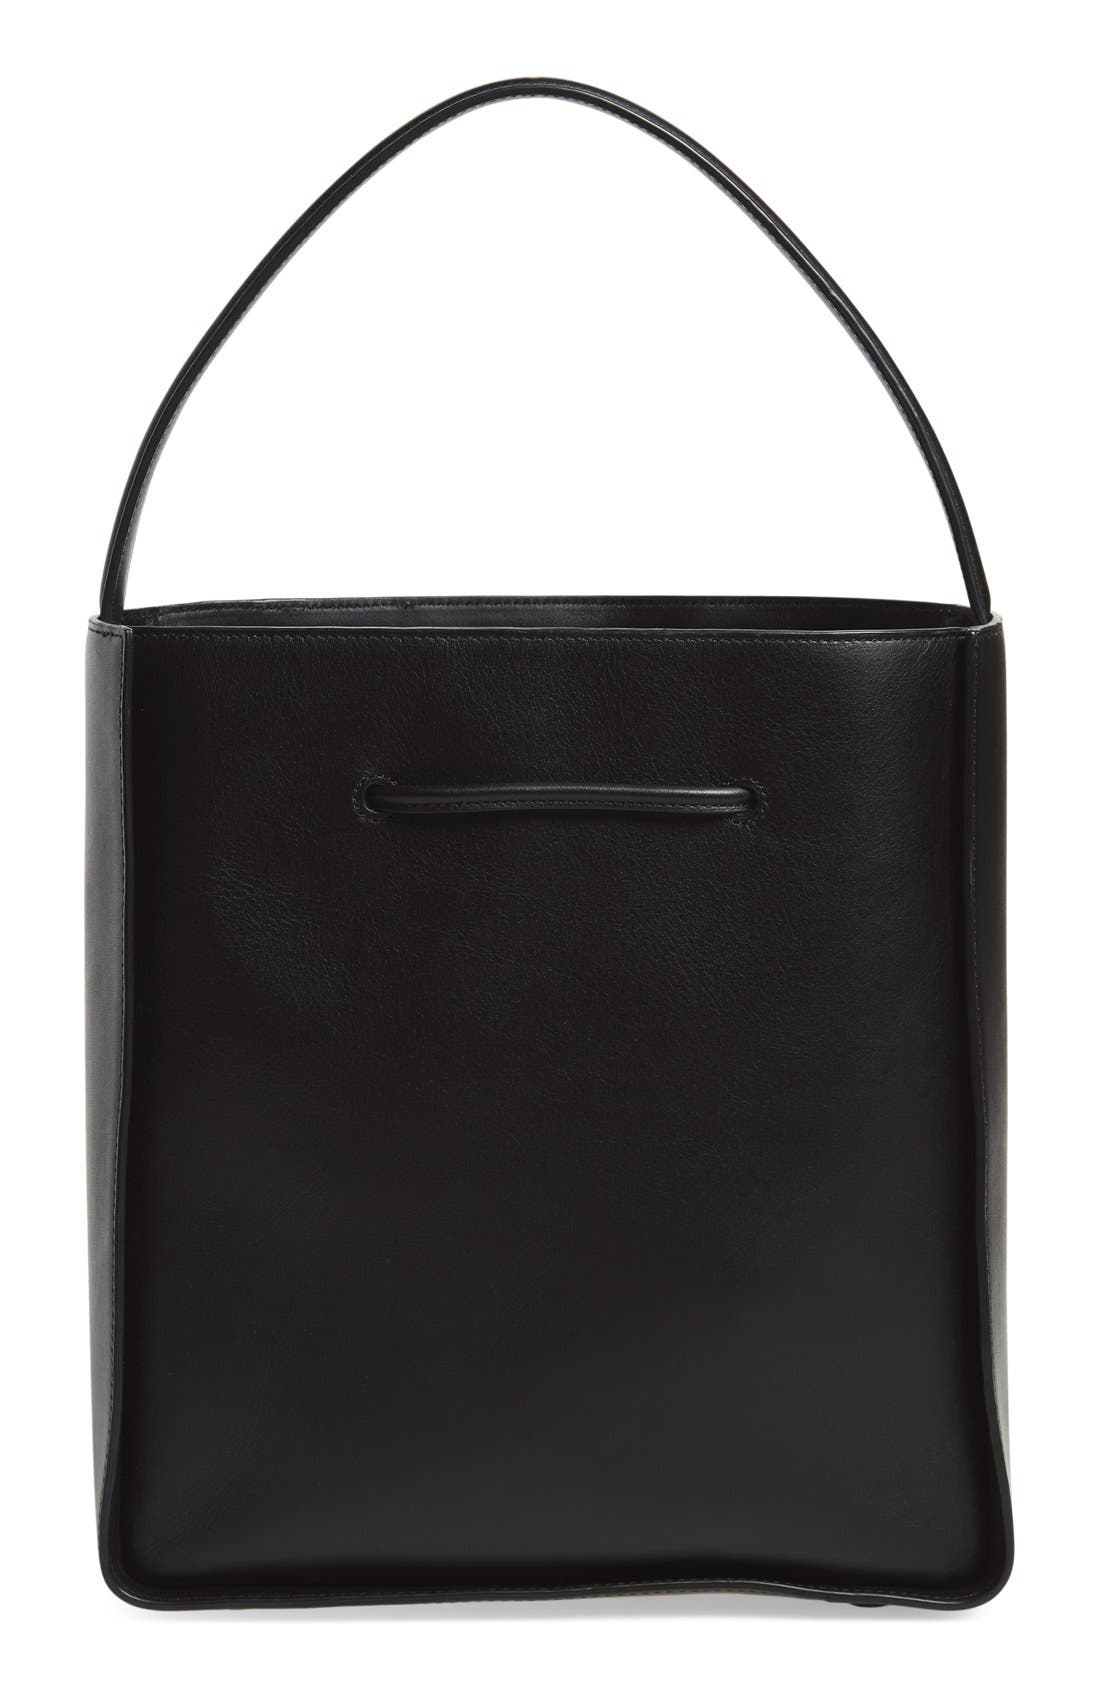 Alternate Image 3  - 3.1 Phillip Lim 'Large Soleil' Bucket Bag